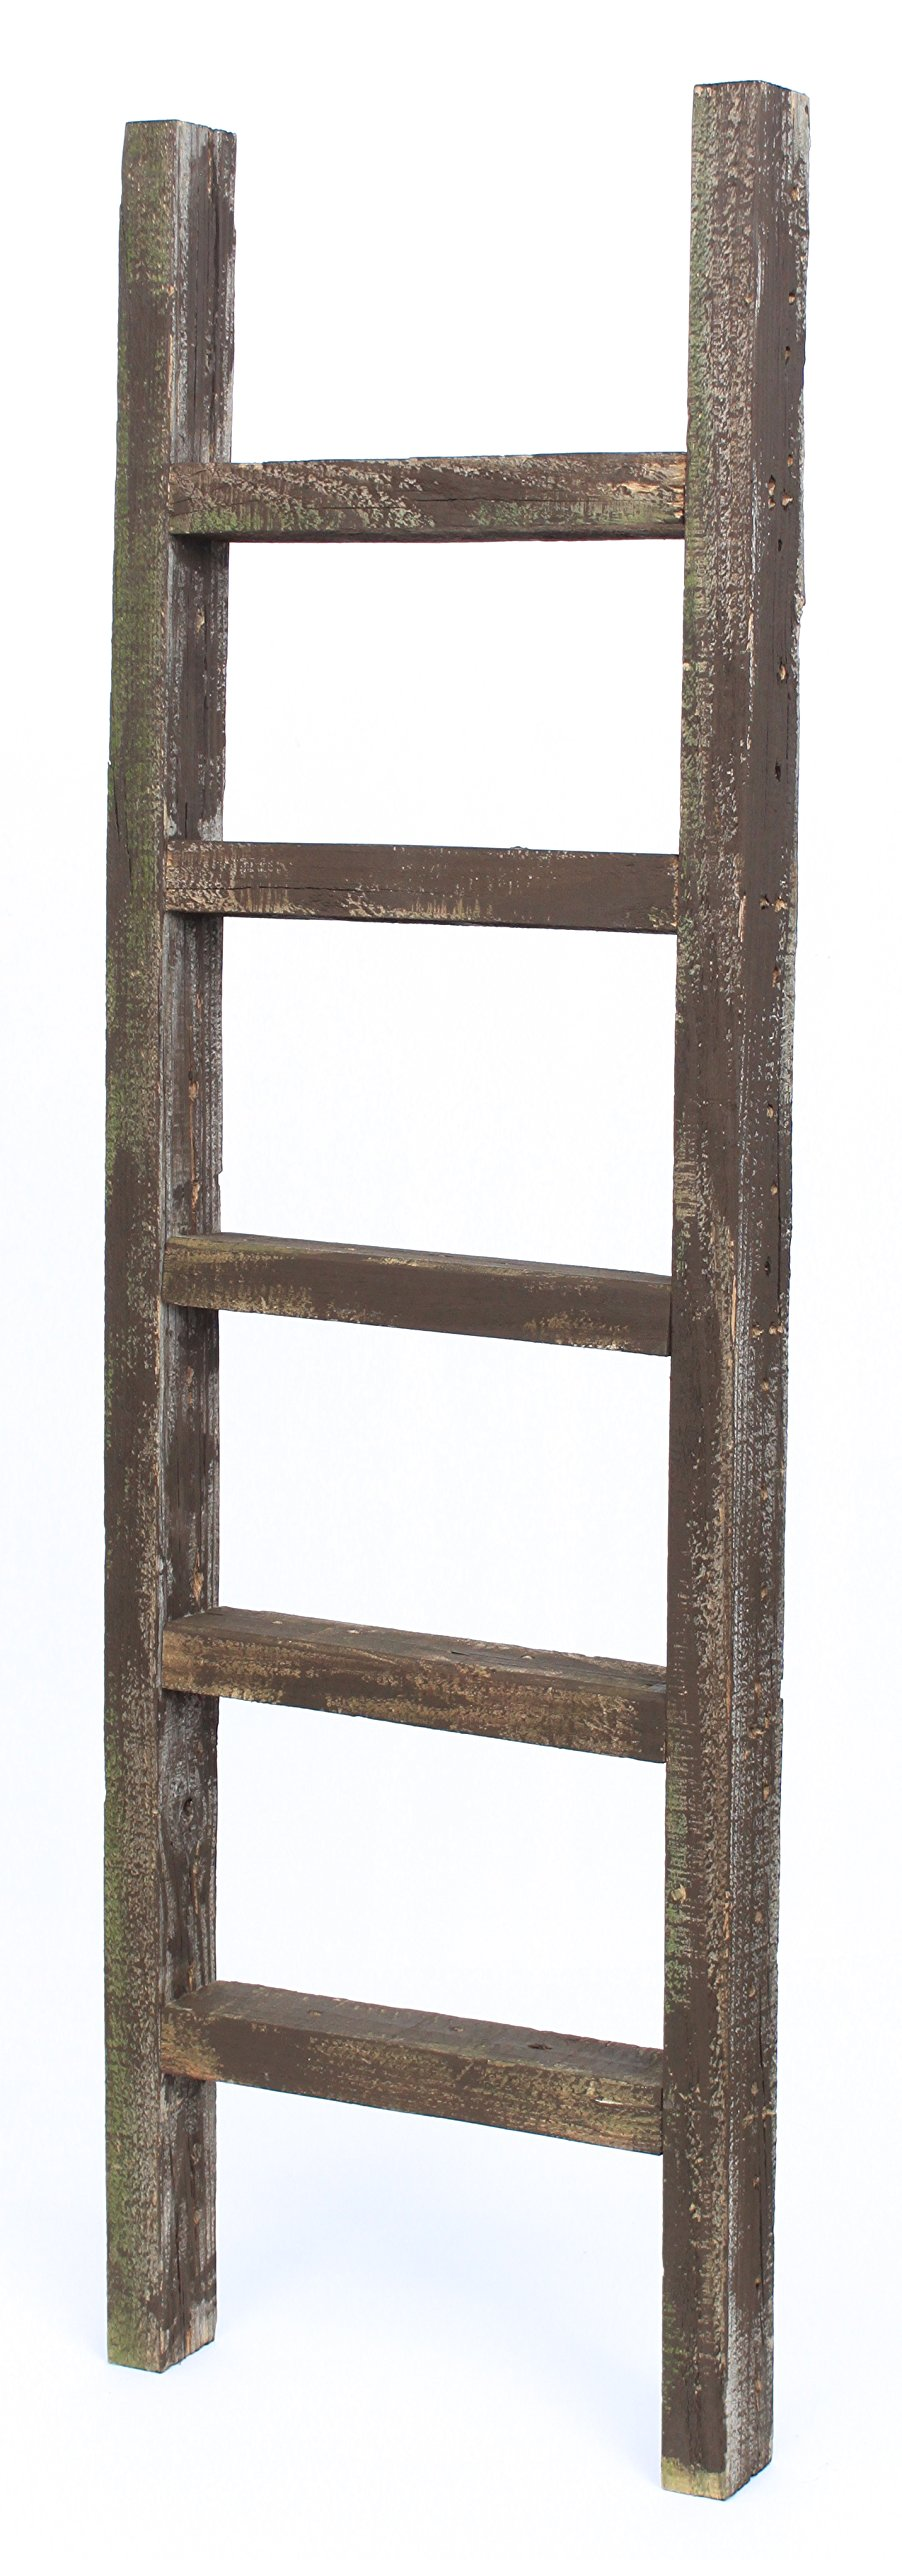 BarnwoodUSA Rustic Farmhouse Decorative Ladder - Our 4ft 2x3 Ladder can be Mounted Horizontally or Vertically | Crafted From 100% Recycled and Reclaimed Wood | No Assembly Required | Brown